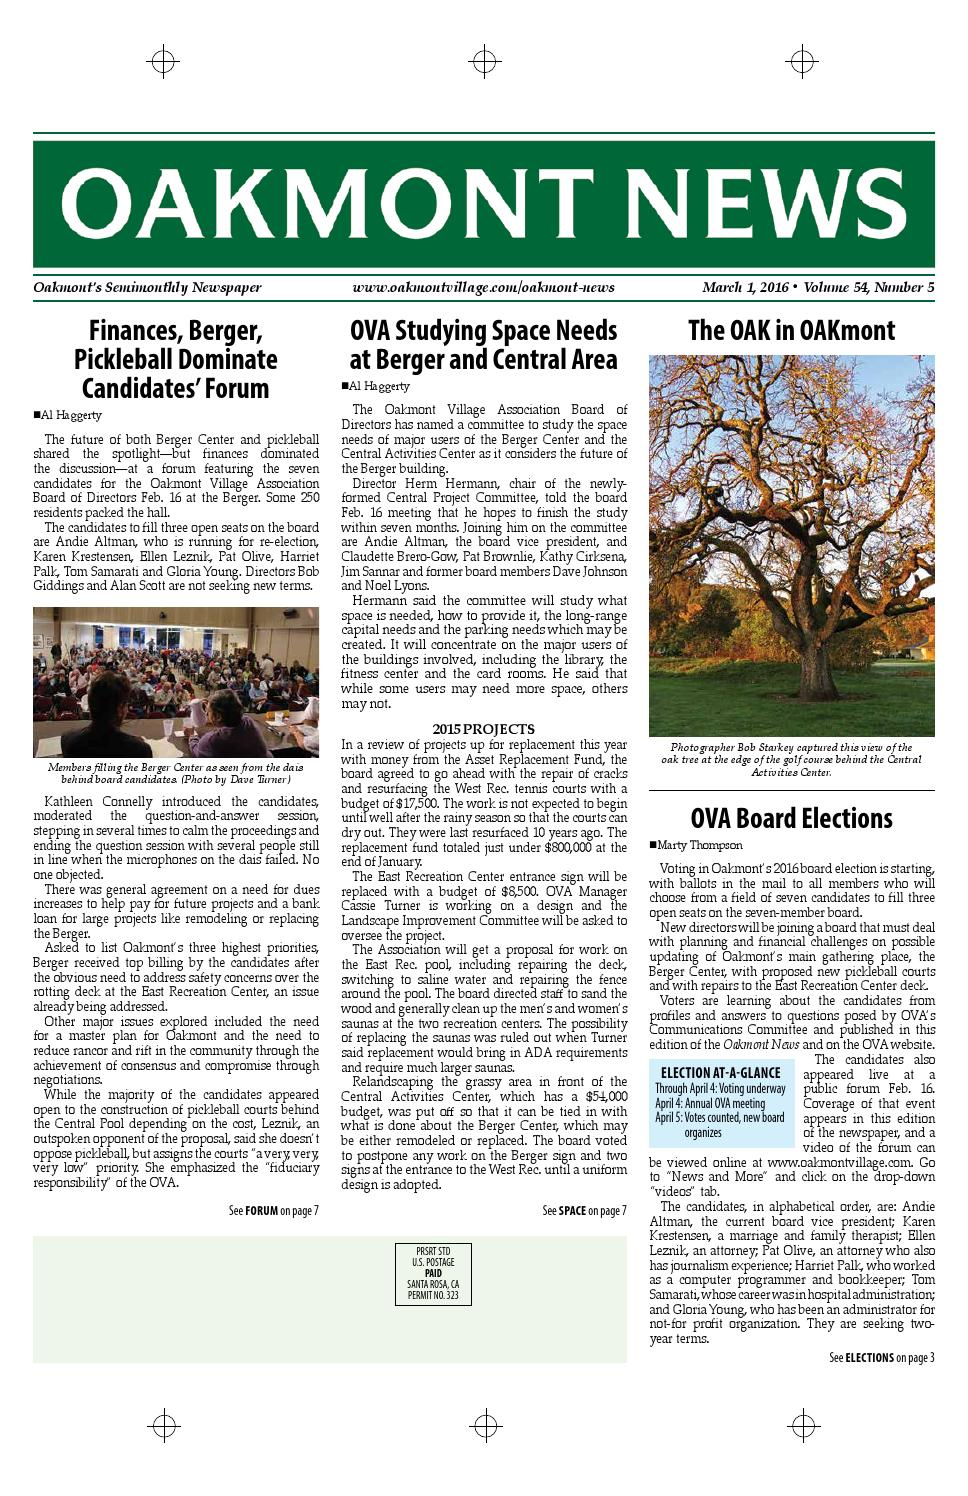 March 1 edition of the oakmont news by oakmont village issuu for The oakmont